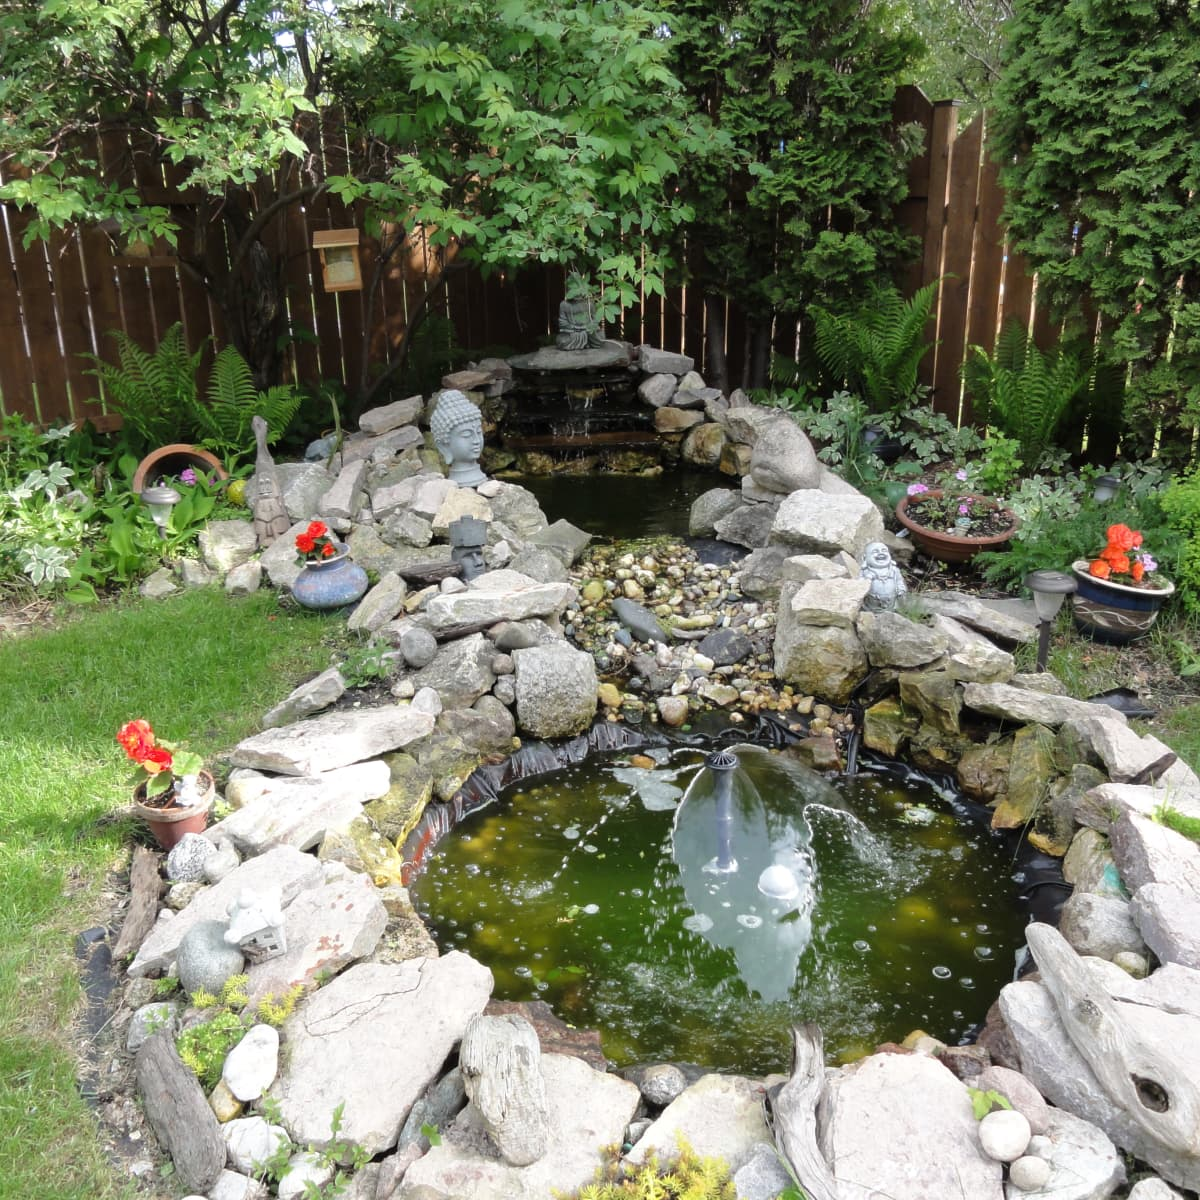 How To Build A Waterfall Meditation Pond For Your Backyard Paradise Dengarden Home And Garden